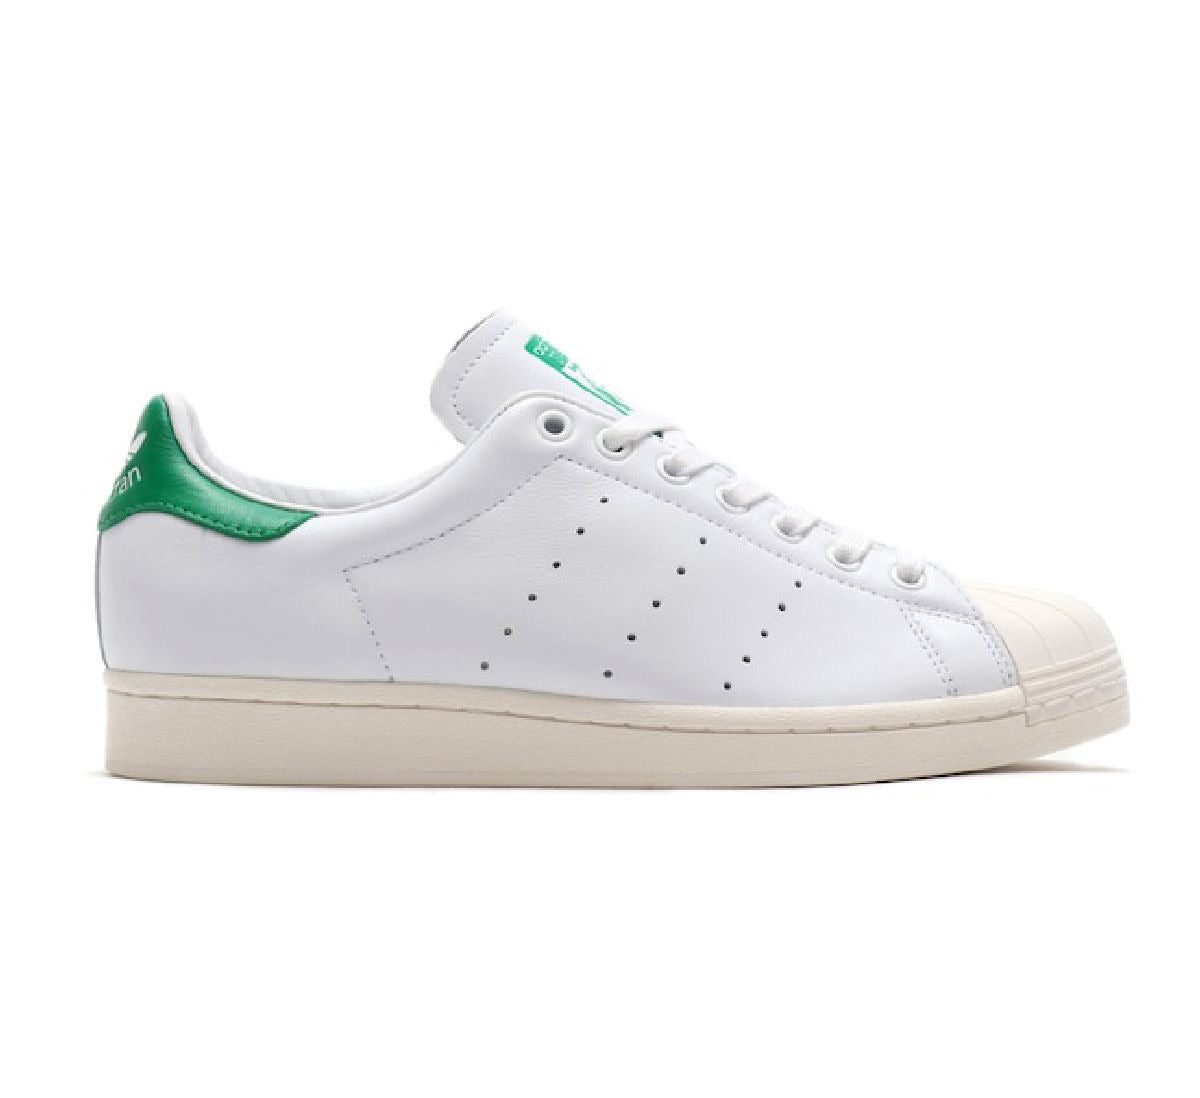 Adidas Originals Shoe Sneakers Three Stripes, PNG